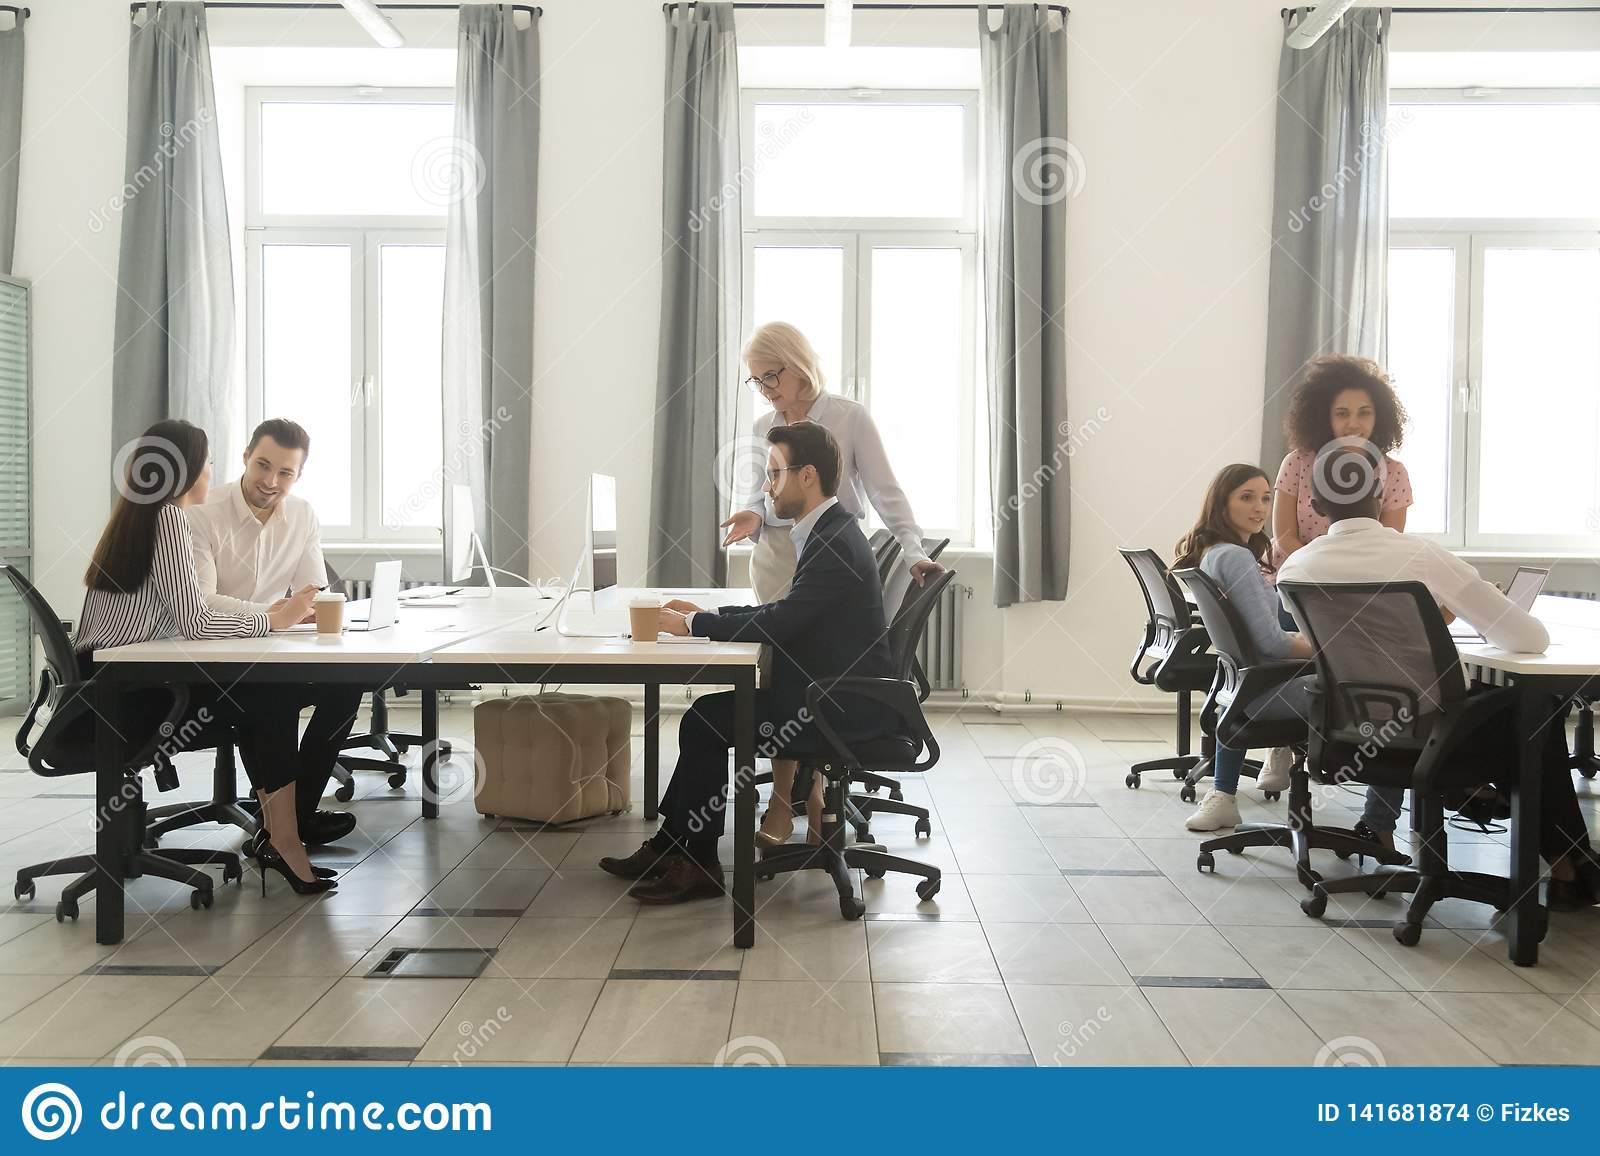 Modern office interior with business team people working on computers